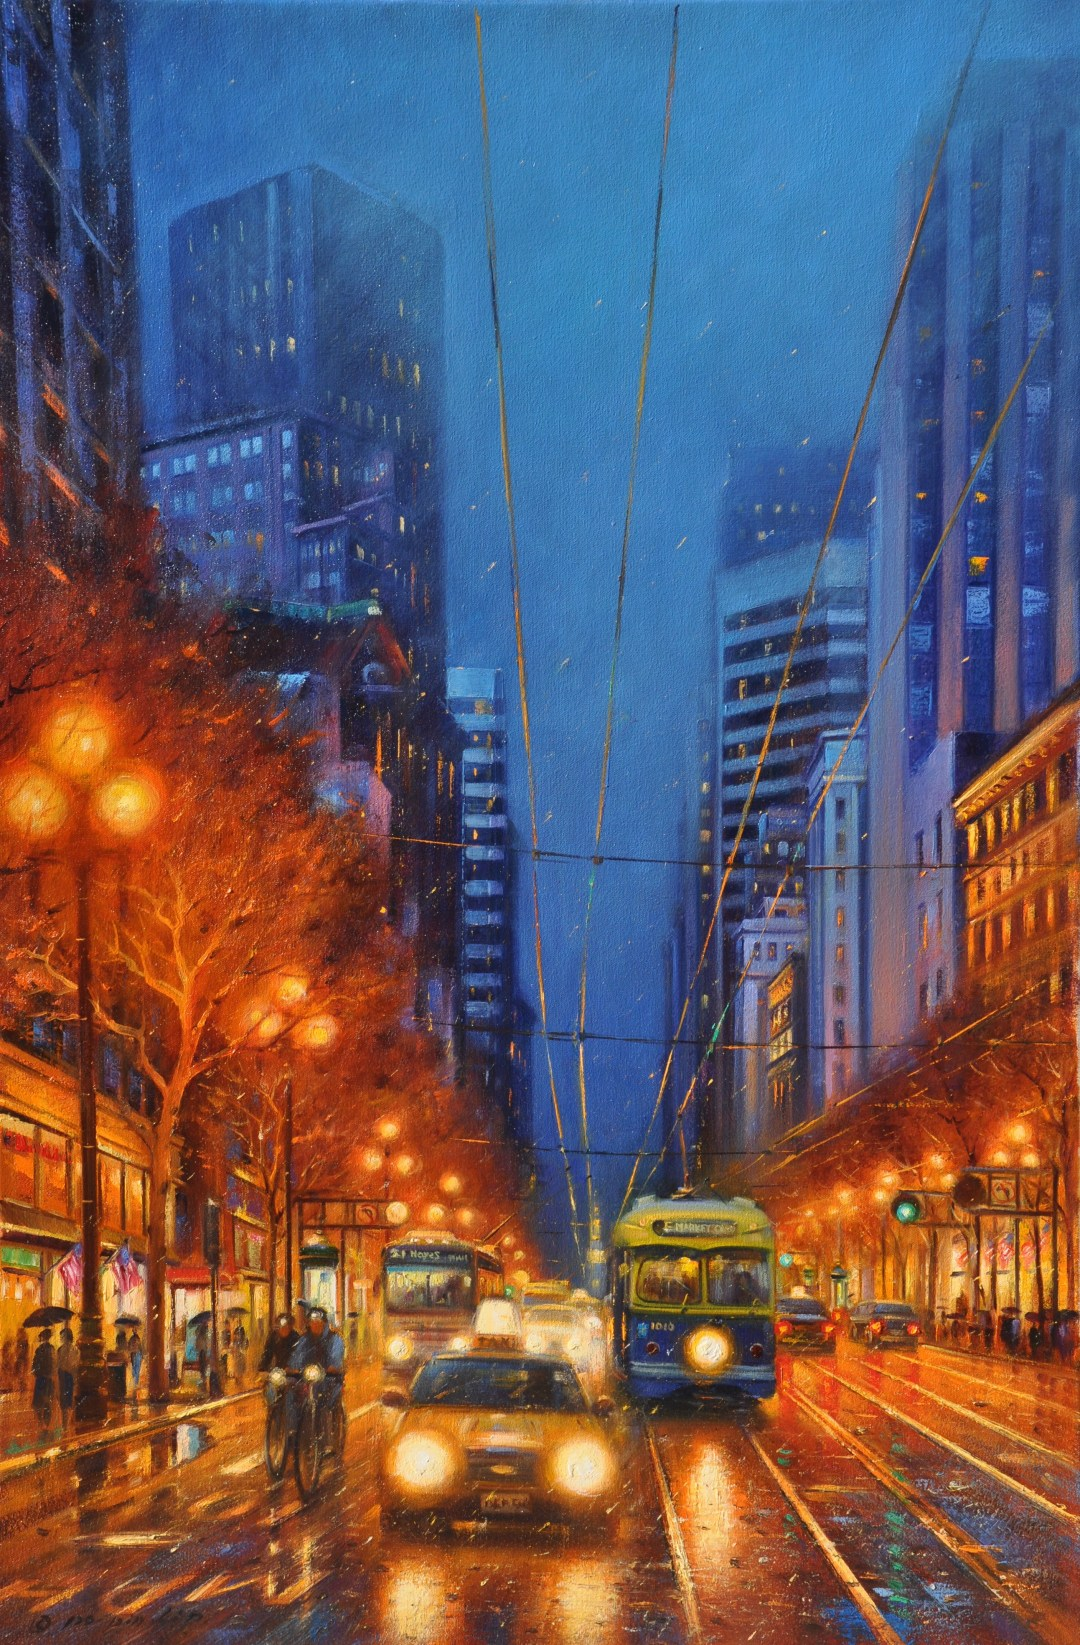 City Lights (San Francisco), 36x24